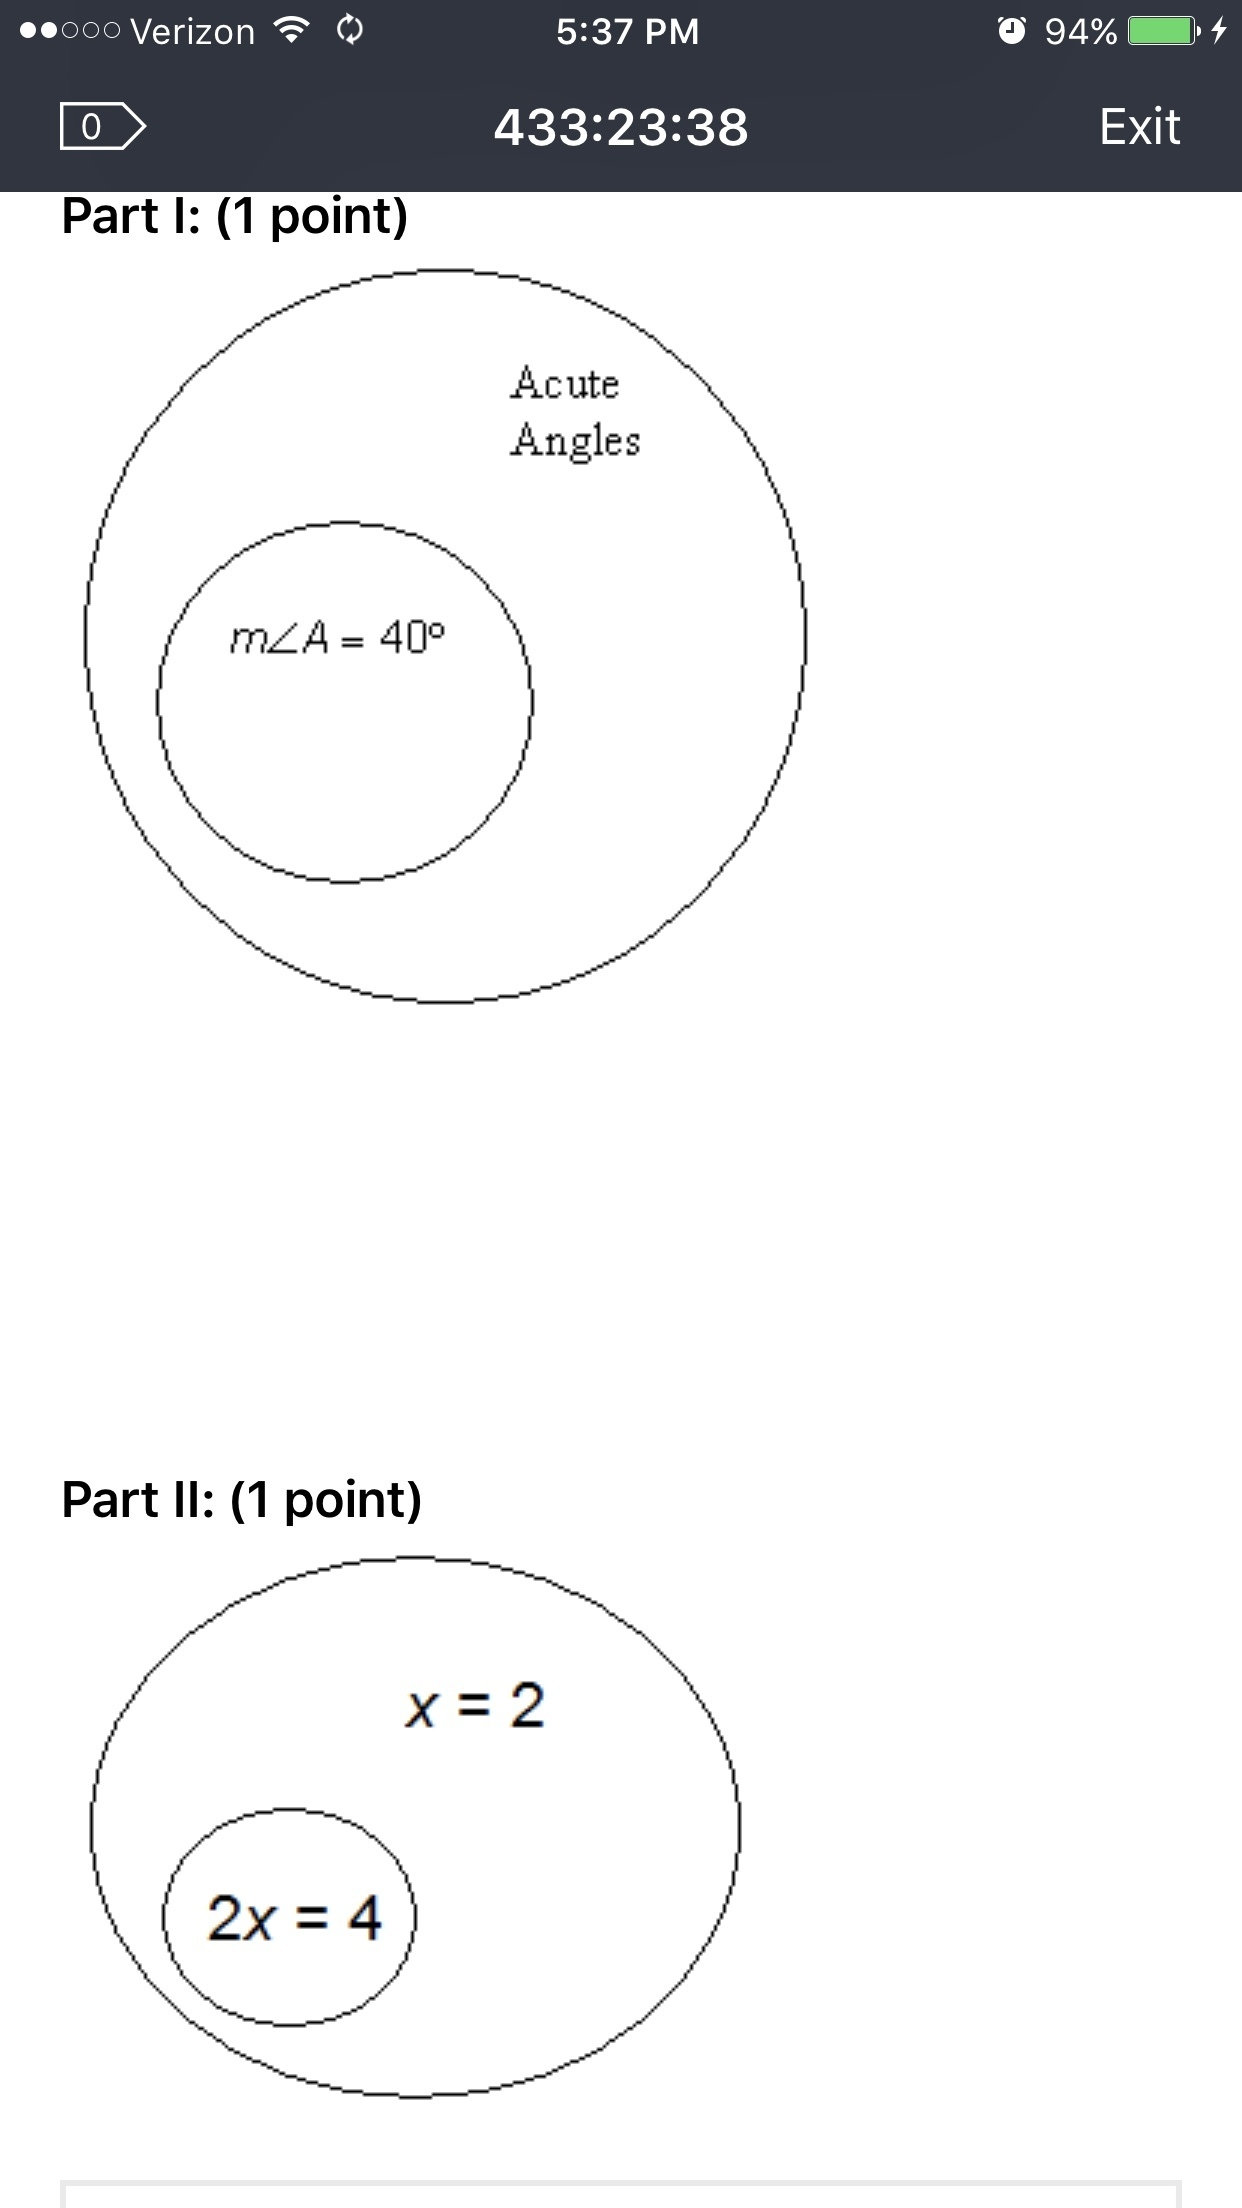 Write A Conditional Statement That Correctly Describes Each Venn